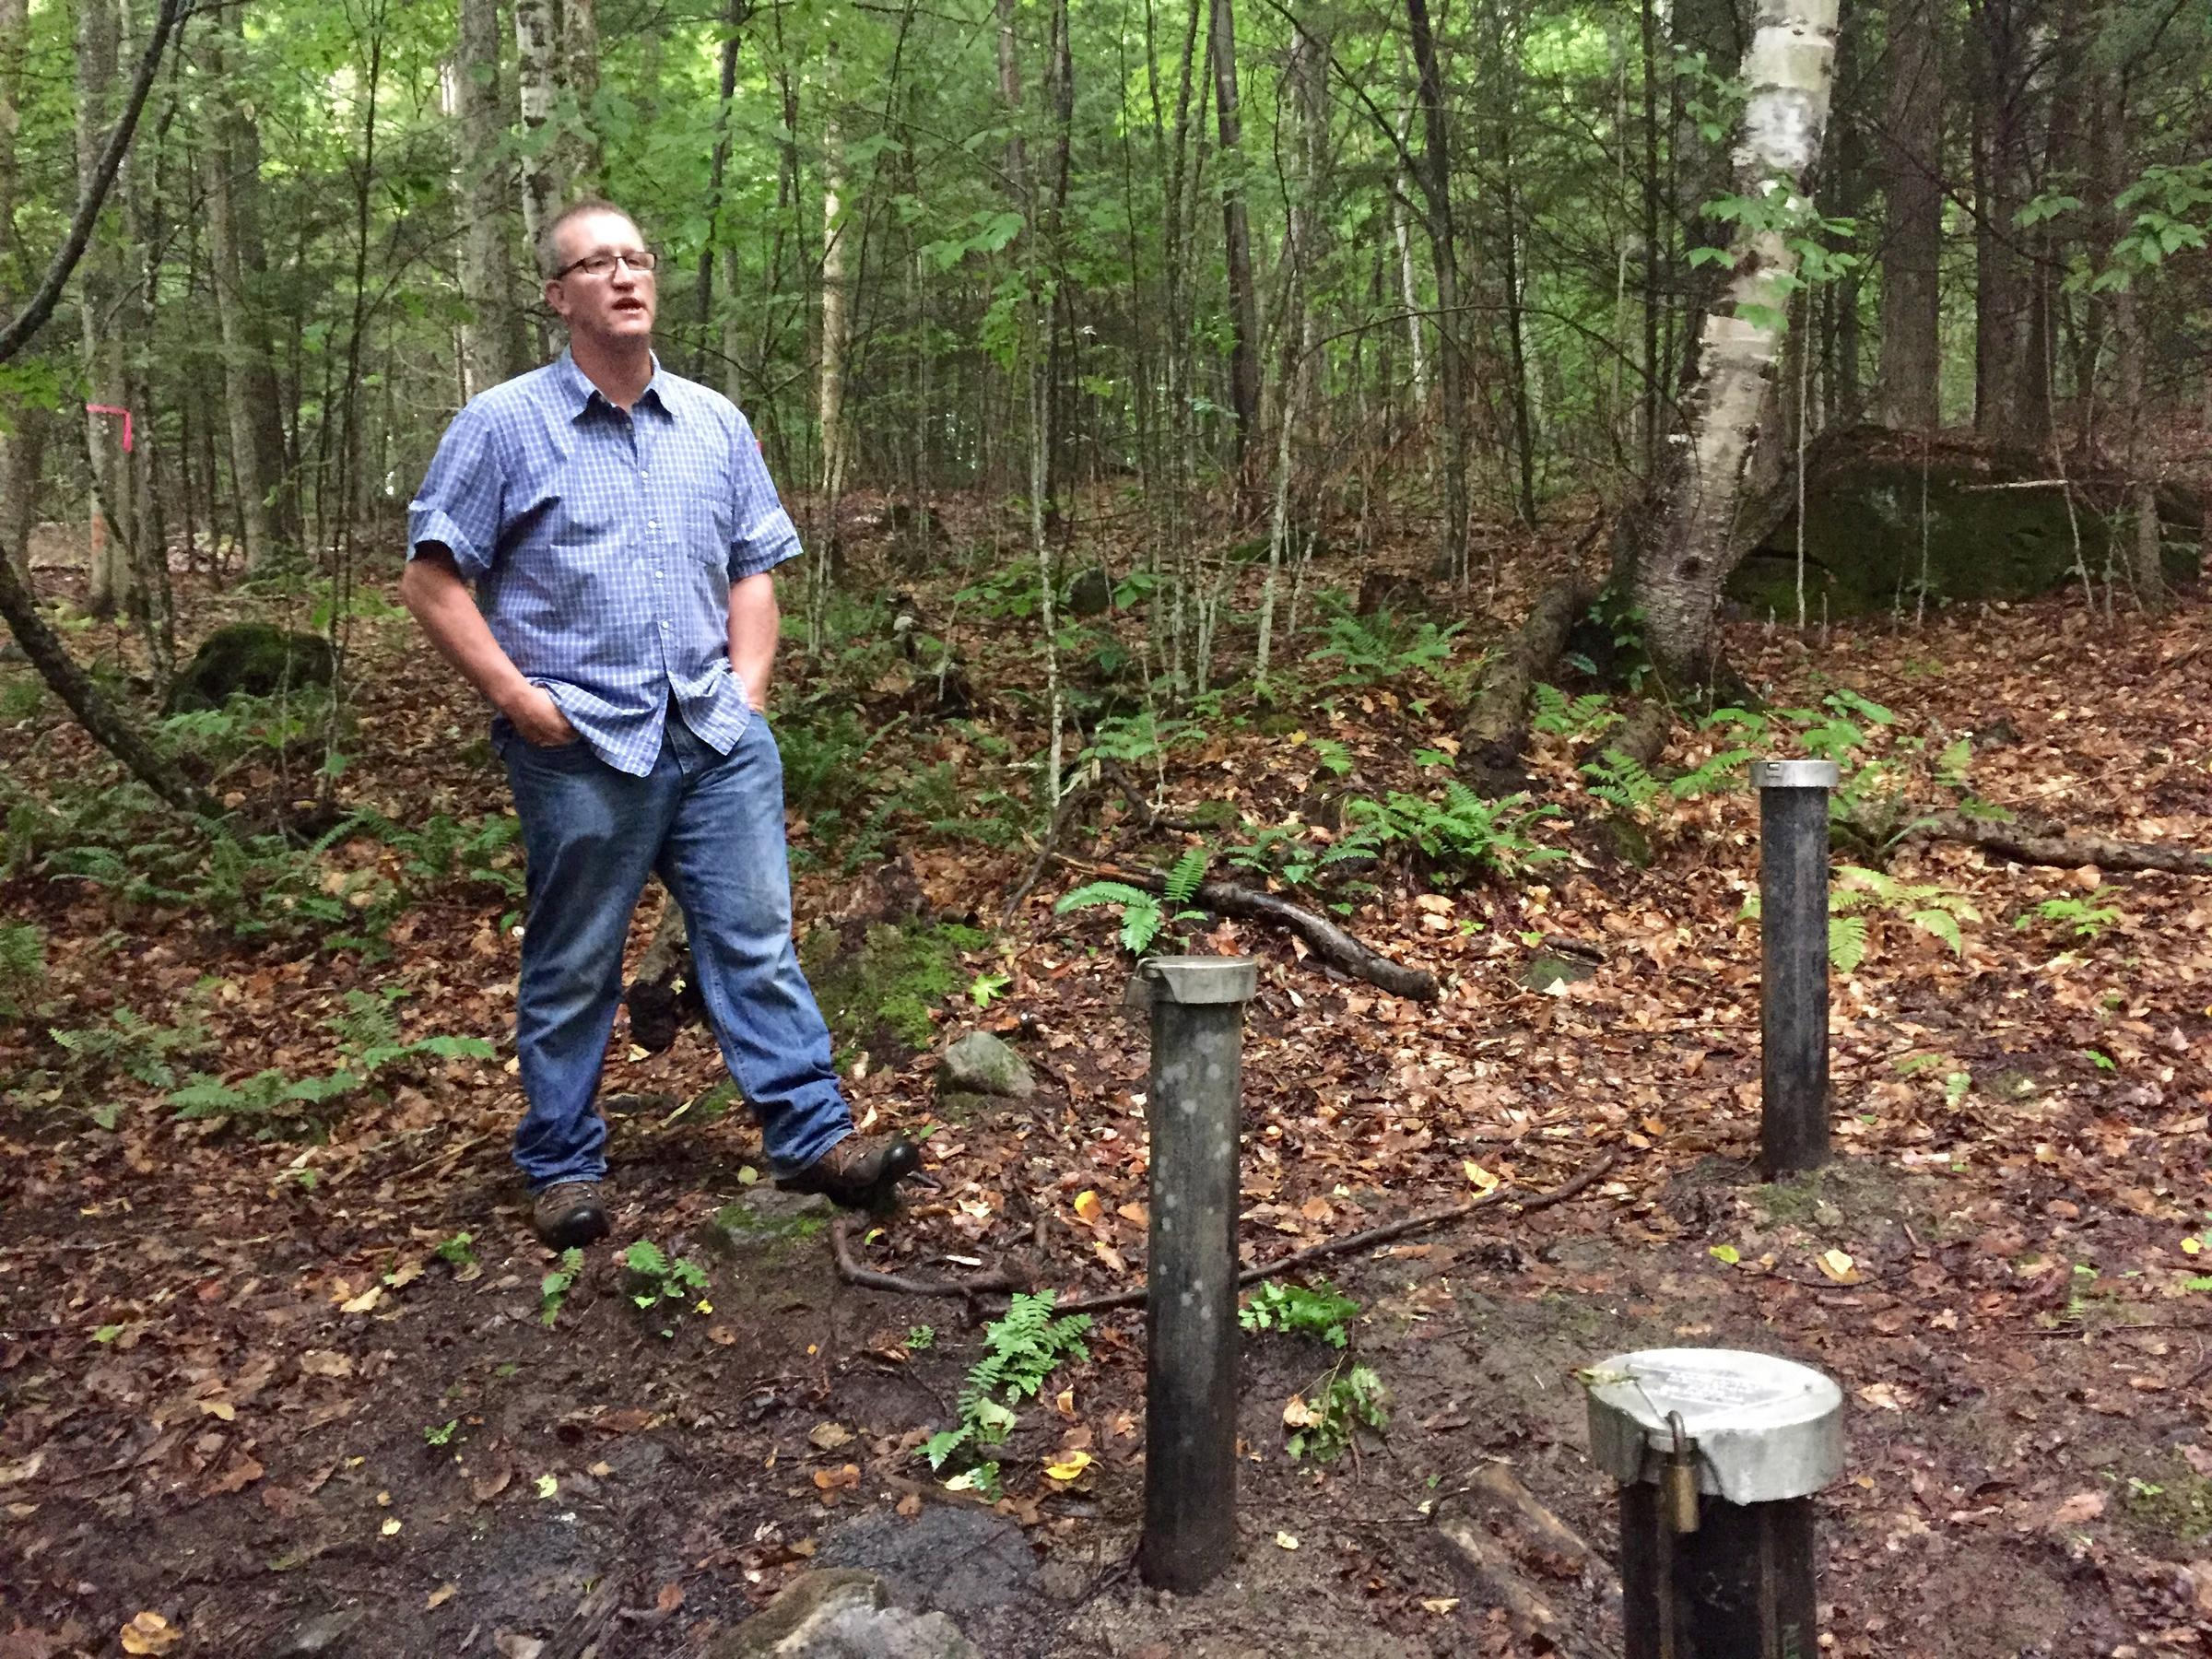 Hanover resident Richard Higgins stands near a well 375 feet away from his property, where groundwater tests have shown hundreds of times the New Hampshire state-alloted amount of the chemical 1,4-dioxane, a suspected carcinogen. REBECCA SANANES / VPR